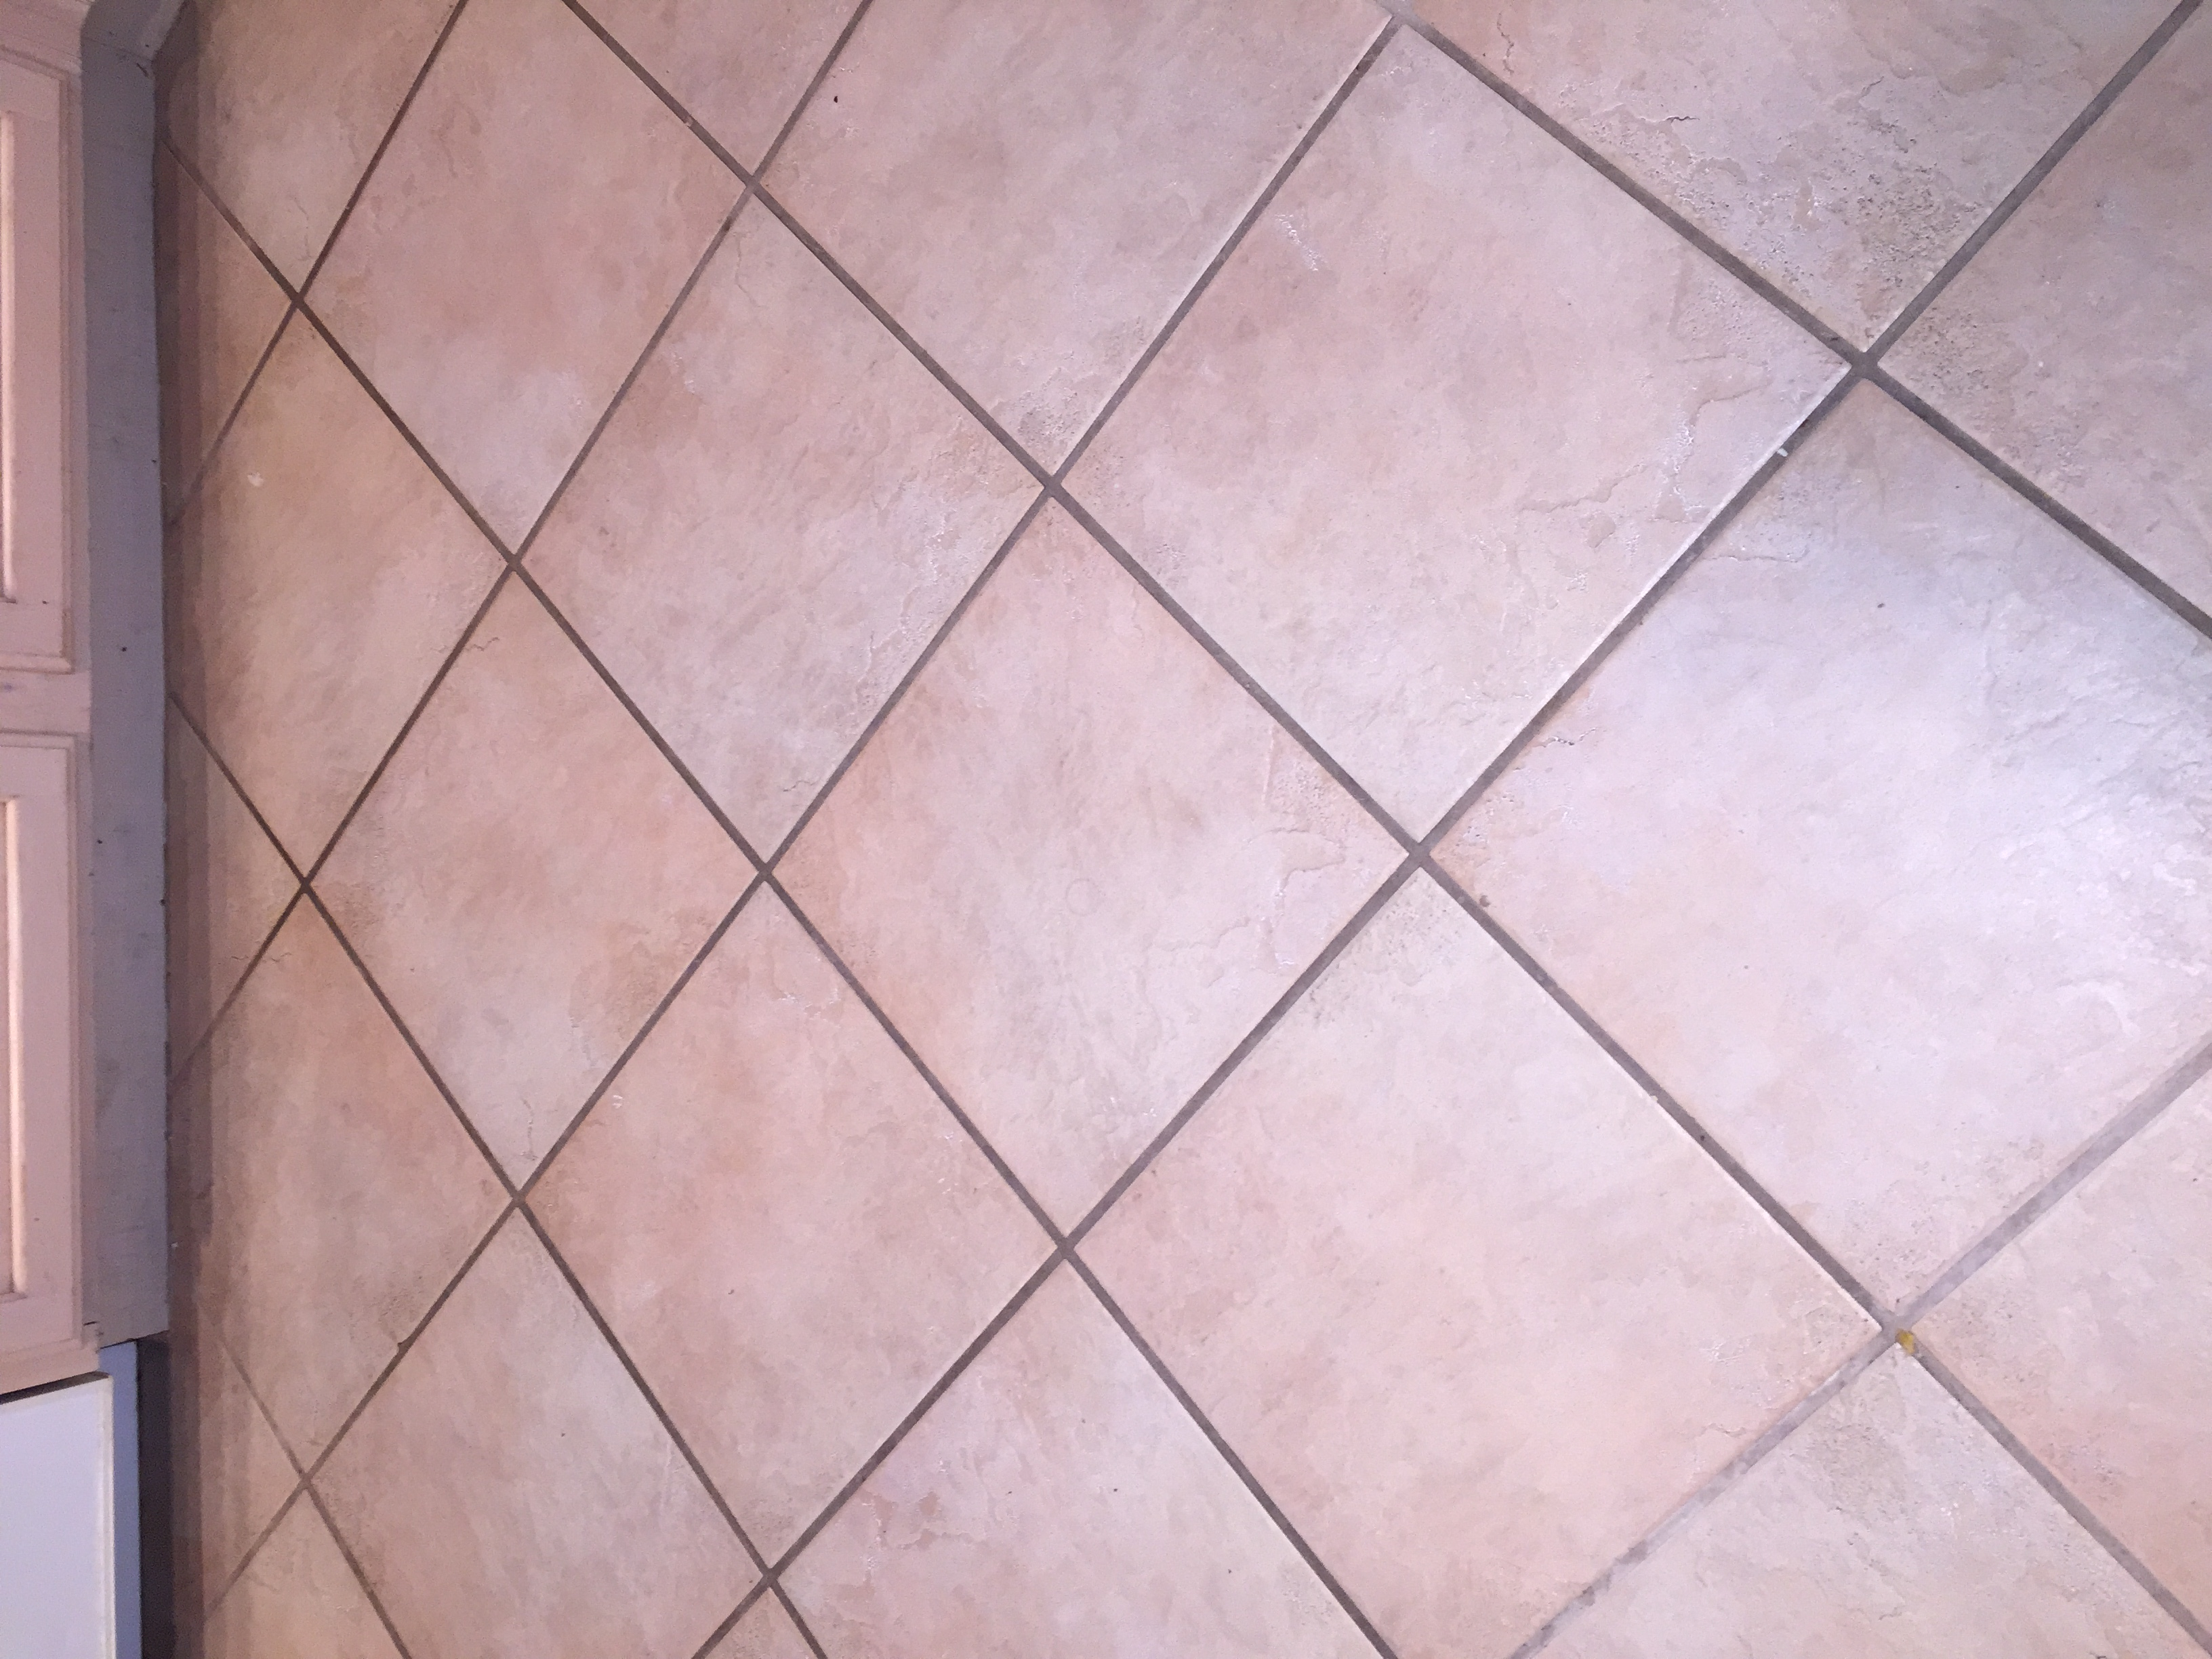 cleaning clean and service tile grout cleaner floors dashing glorious ceramic with for size of kitchen floor full